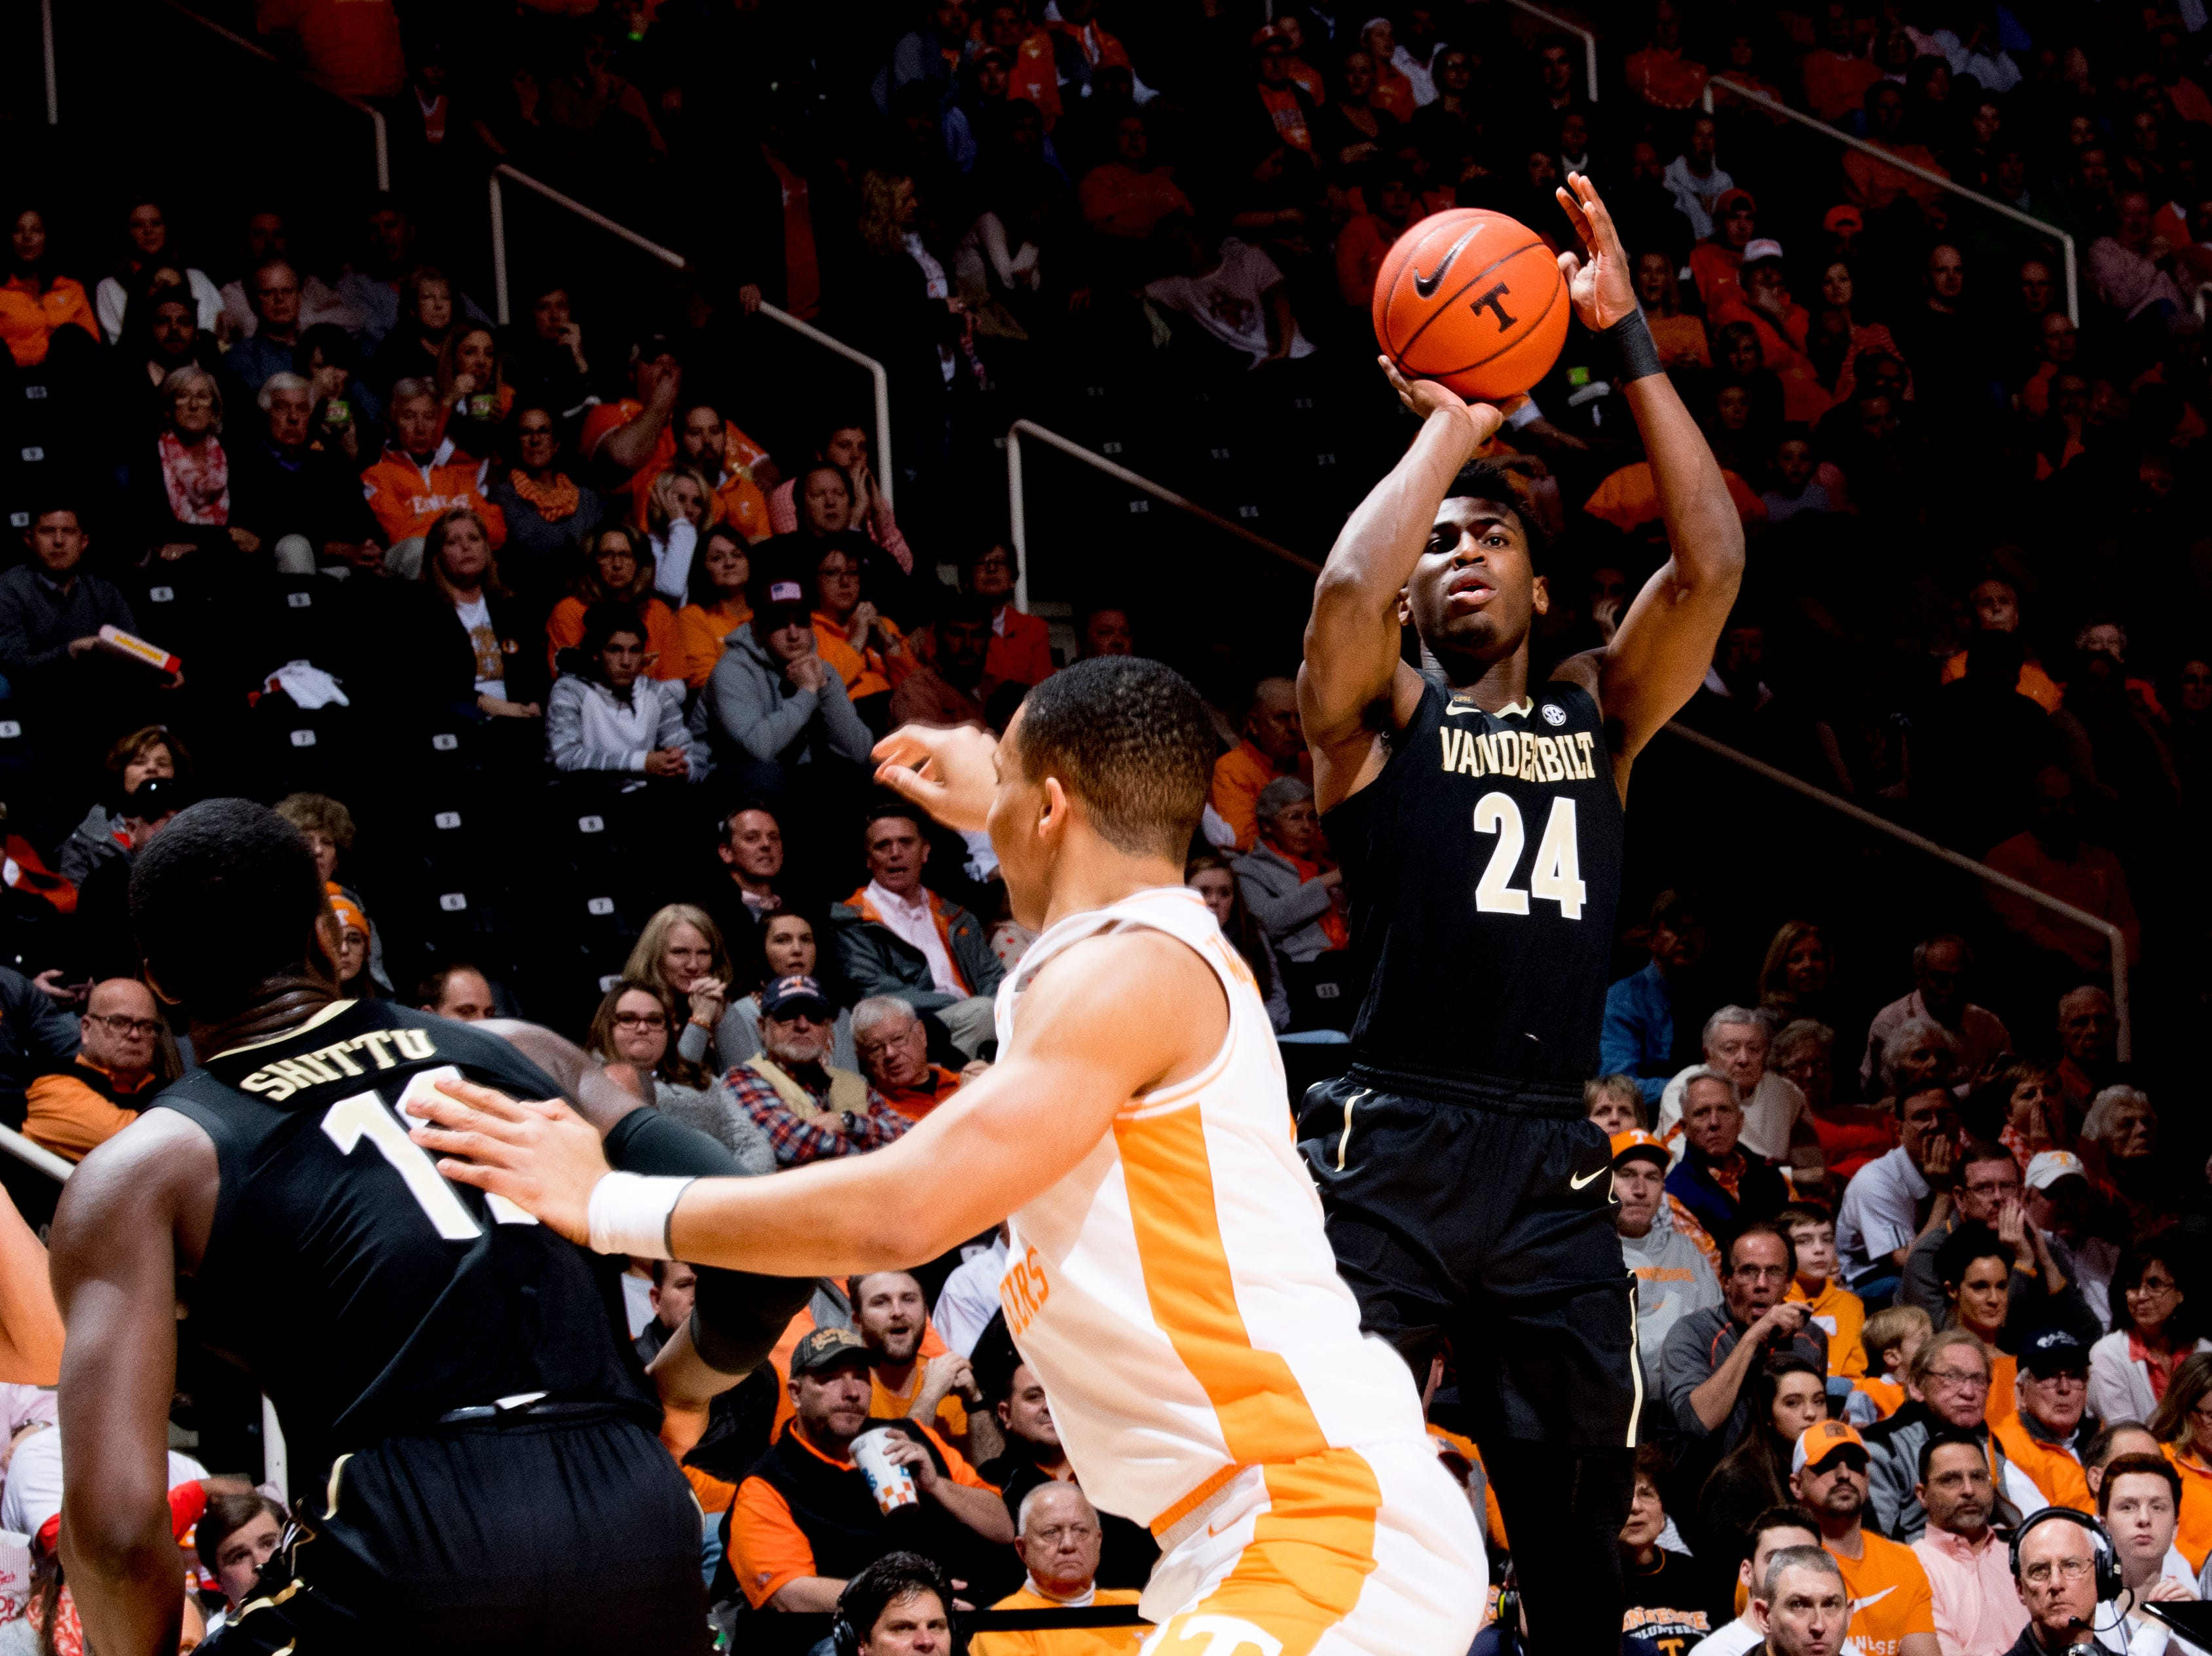 Vanderbilt forward Aaron Nesmith (24) shoots the ball during a game between Tennessee and Vanderbilt at Thompson-Boling Arena in Knoxville, Tennessee on Tuesday, February 19, 2019.